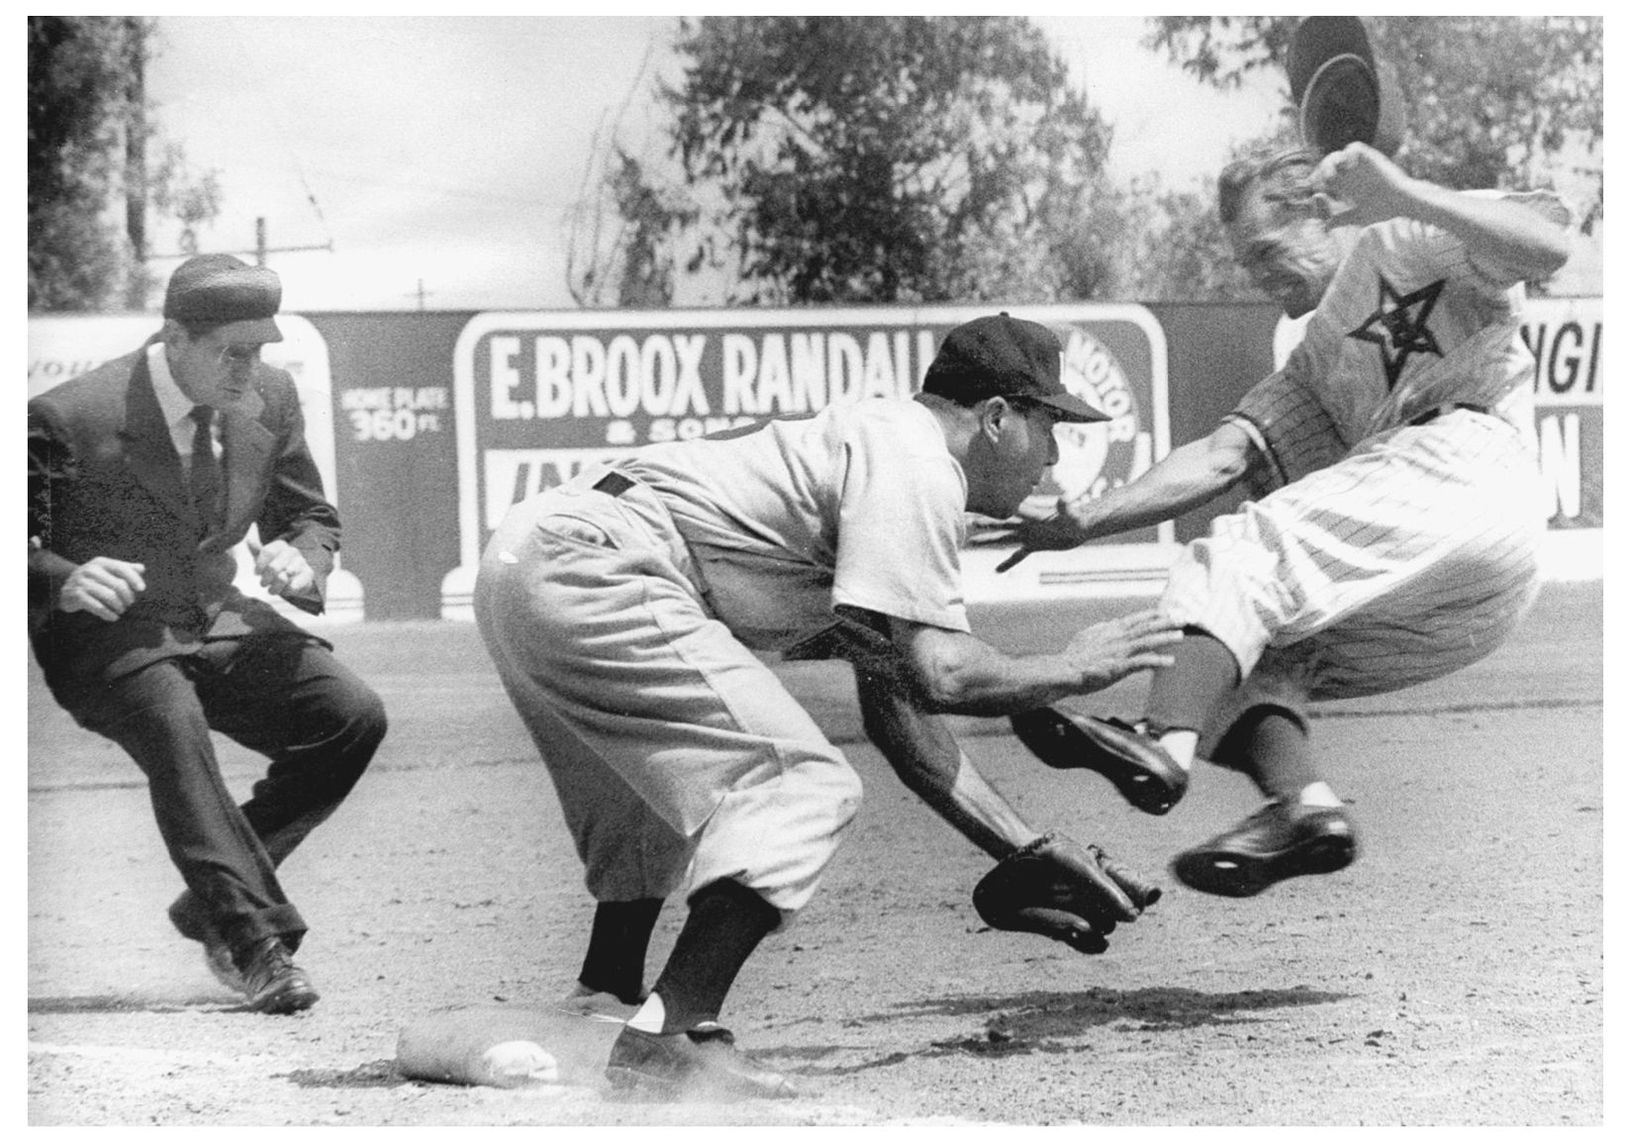 Hollywood Stars' Ted Beard, sliding spikes first into Angels' third baseman Murray Franklin, setting off a riot at Gilmore Field in 1953.